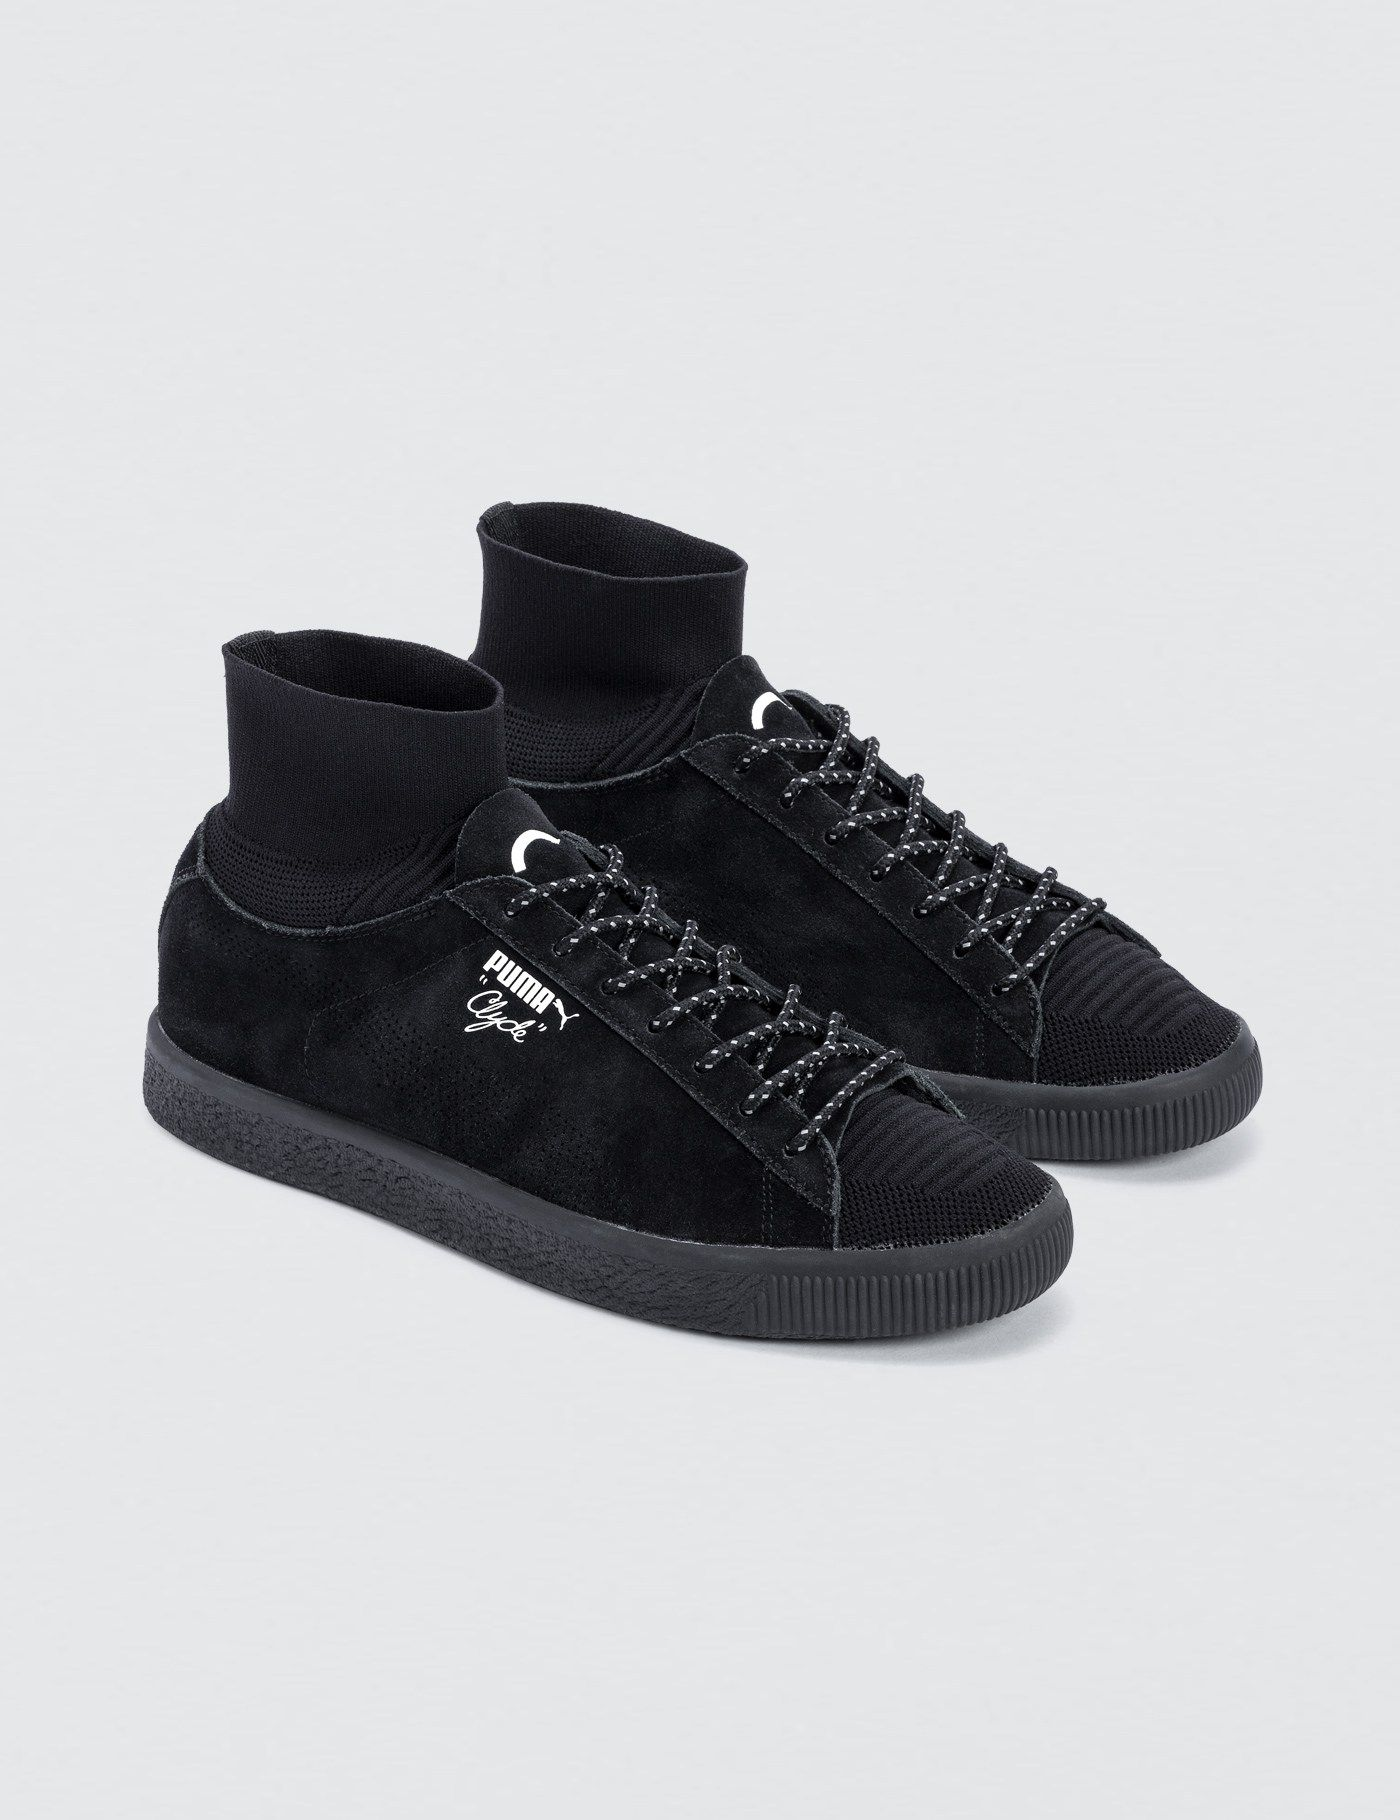 brand new 7ecc7 09844 Puma BLACKRAINBOW x Puma Clyde Socks | HBX. | Hudson Knit ...